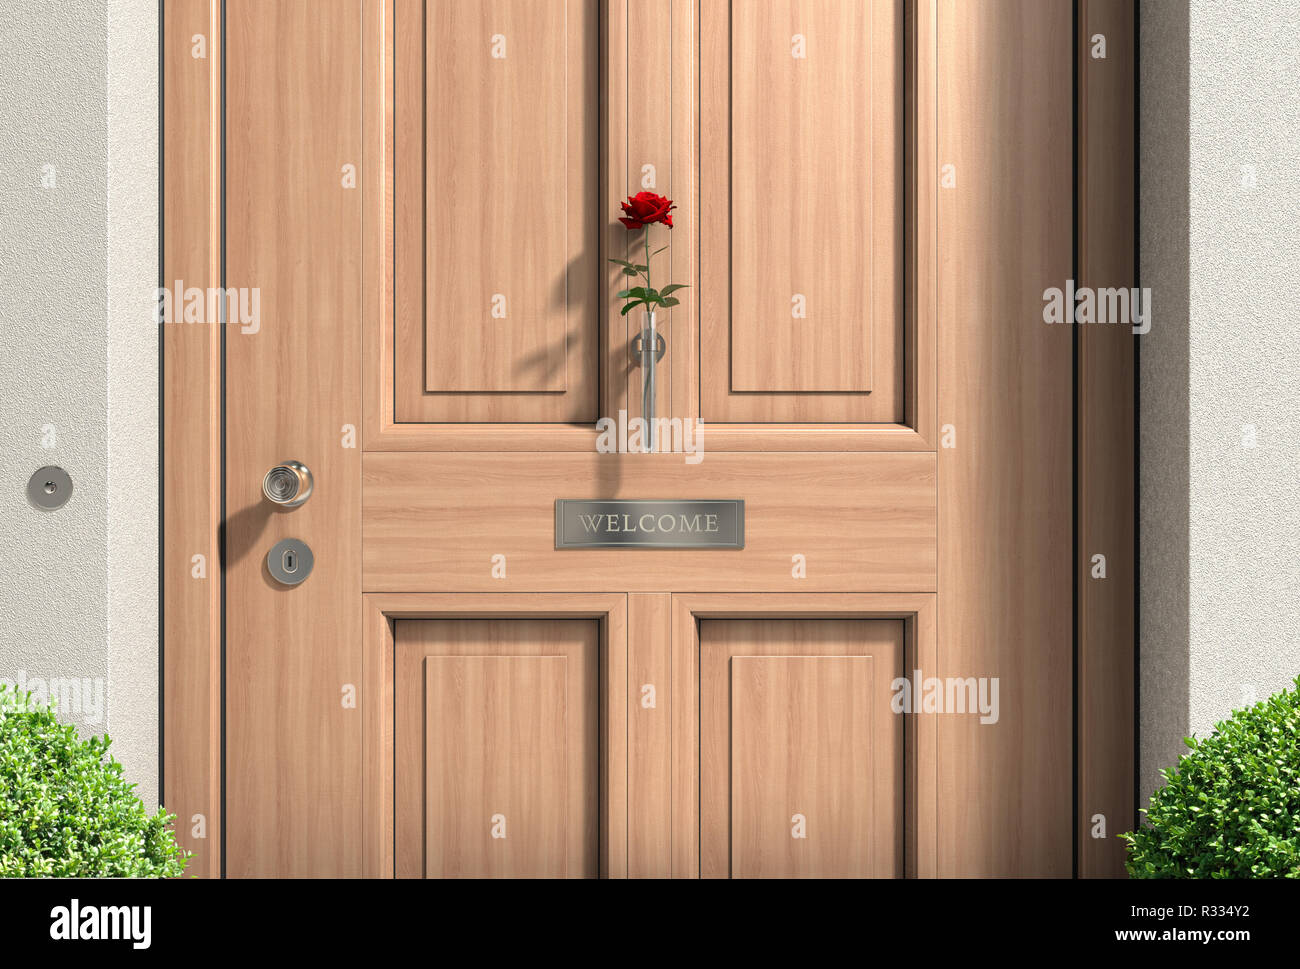 wood-house door with rose - Stock Image